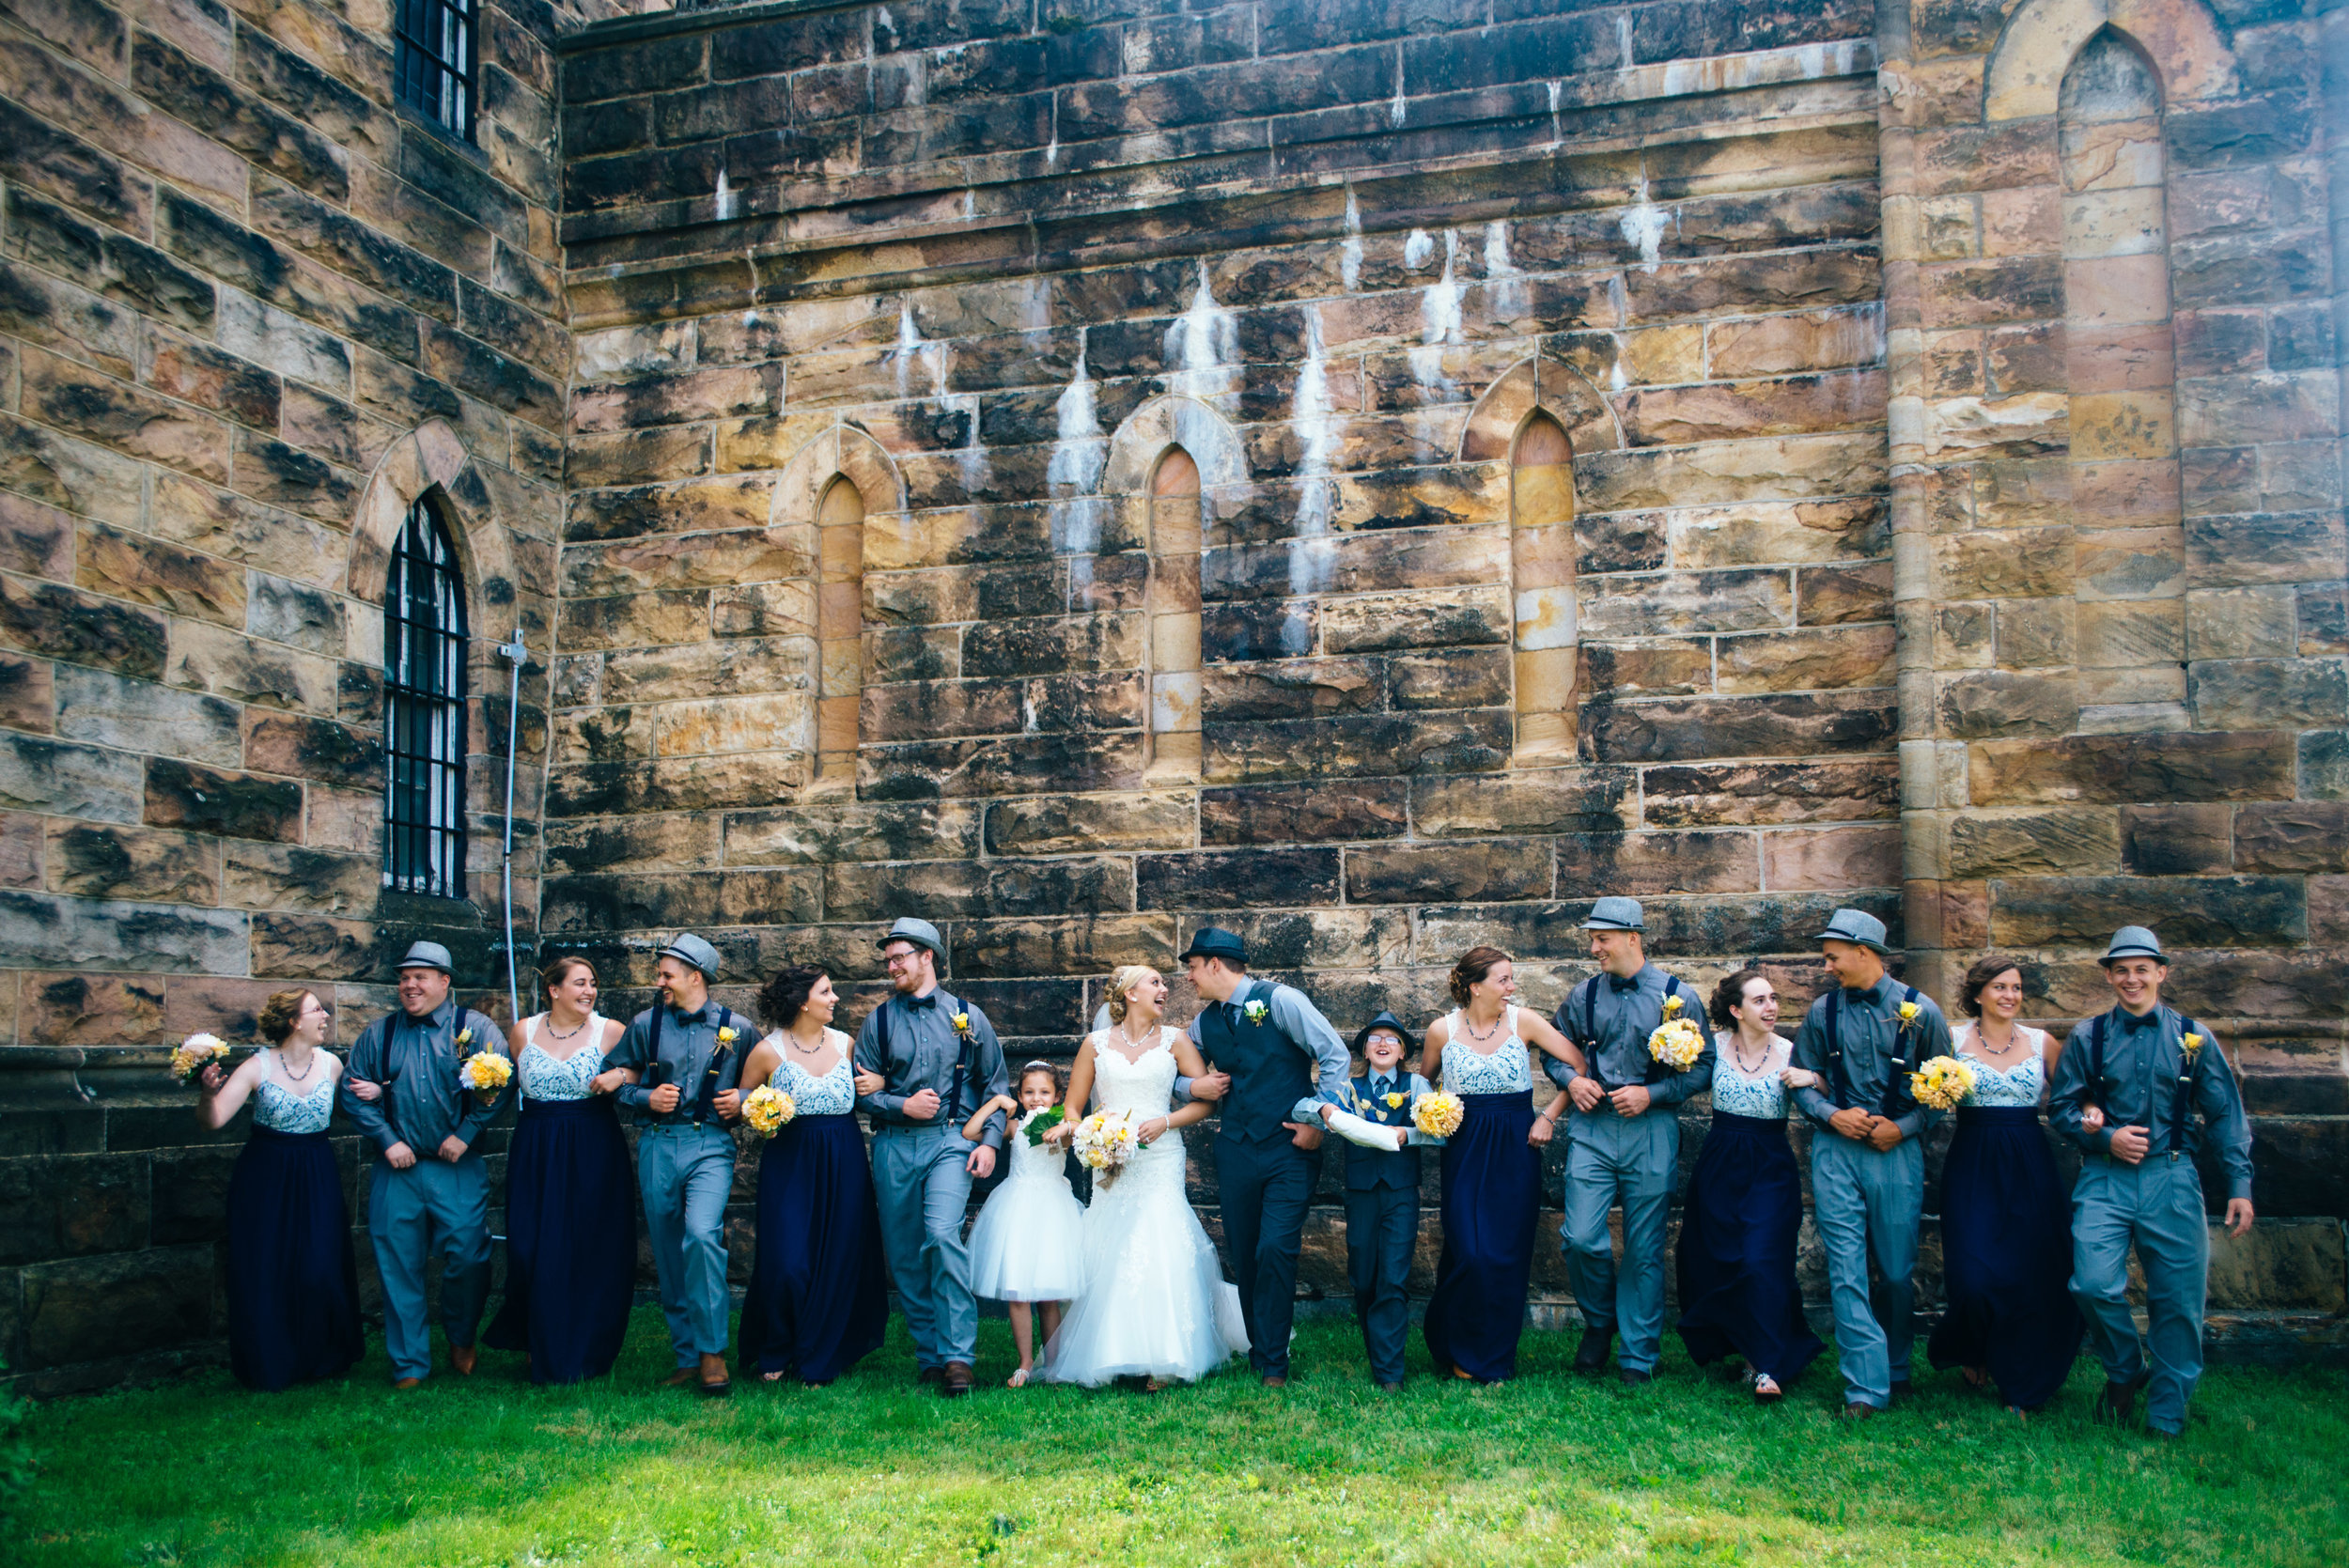 Bridal party walking and laughing in front of old Cambria County Jail in Ebensburg, PA